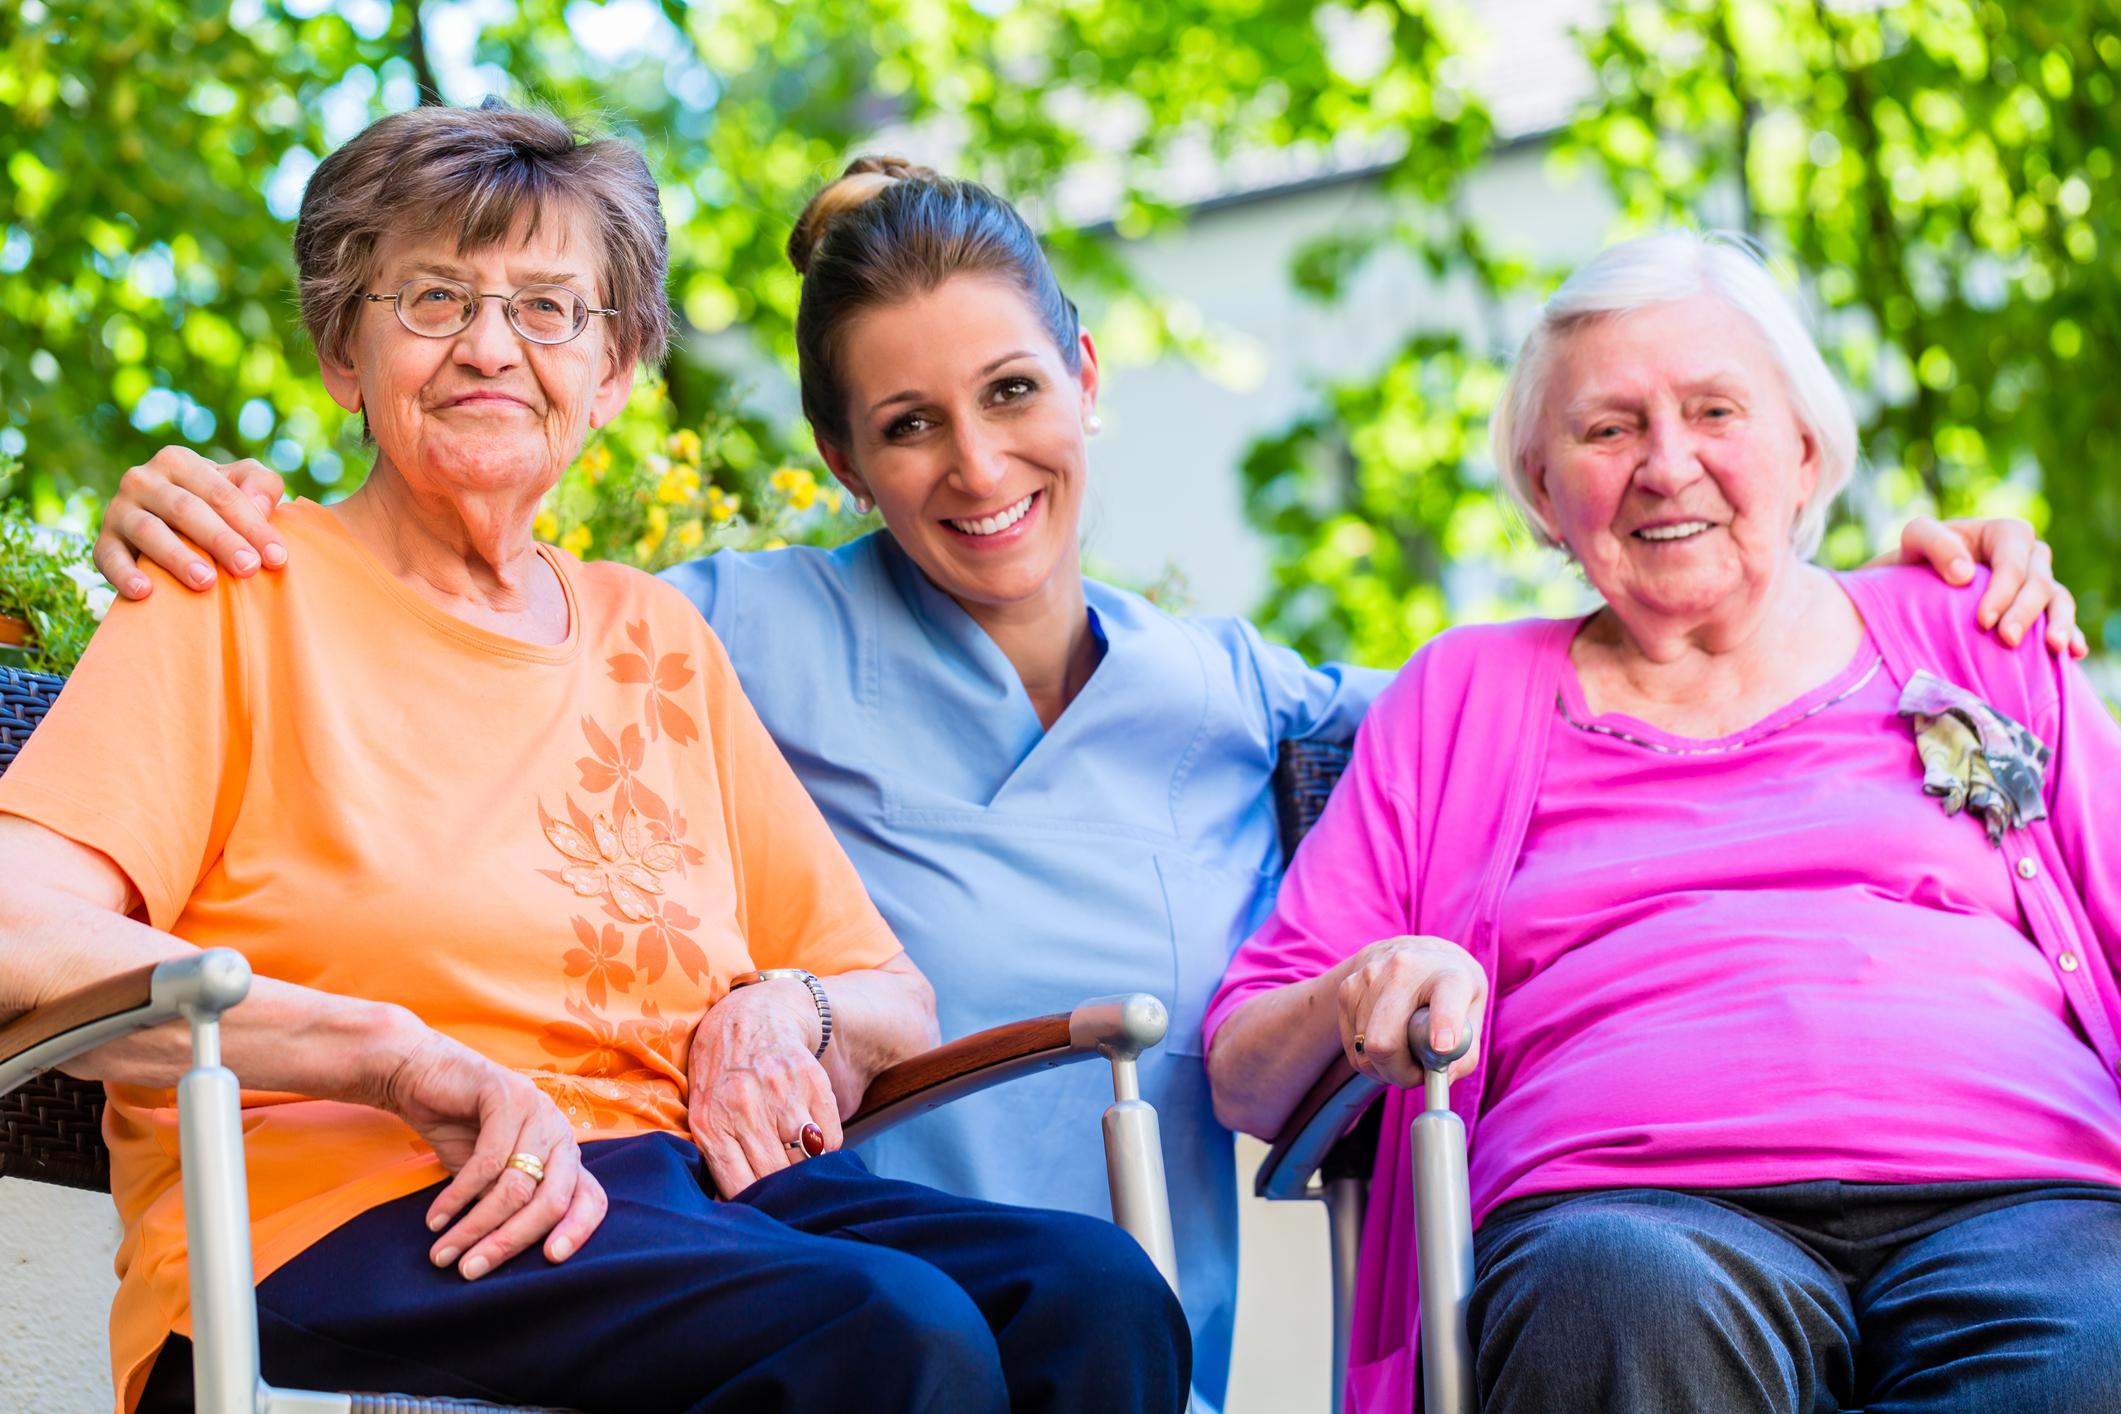 Bethesda social worker sitting between two senior residents. Bethesda Social Workers provide excellent service to our senior residents and their families.